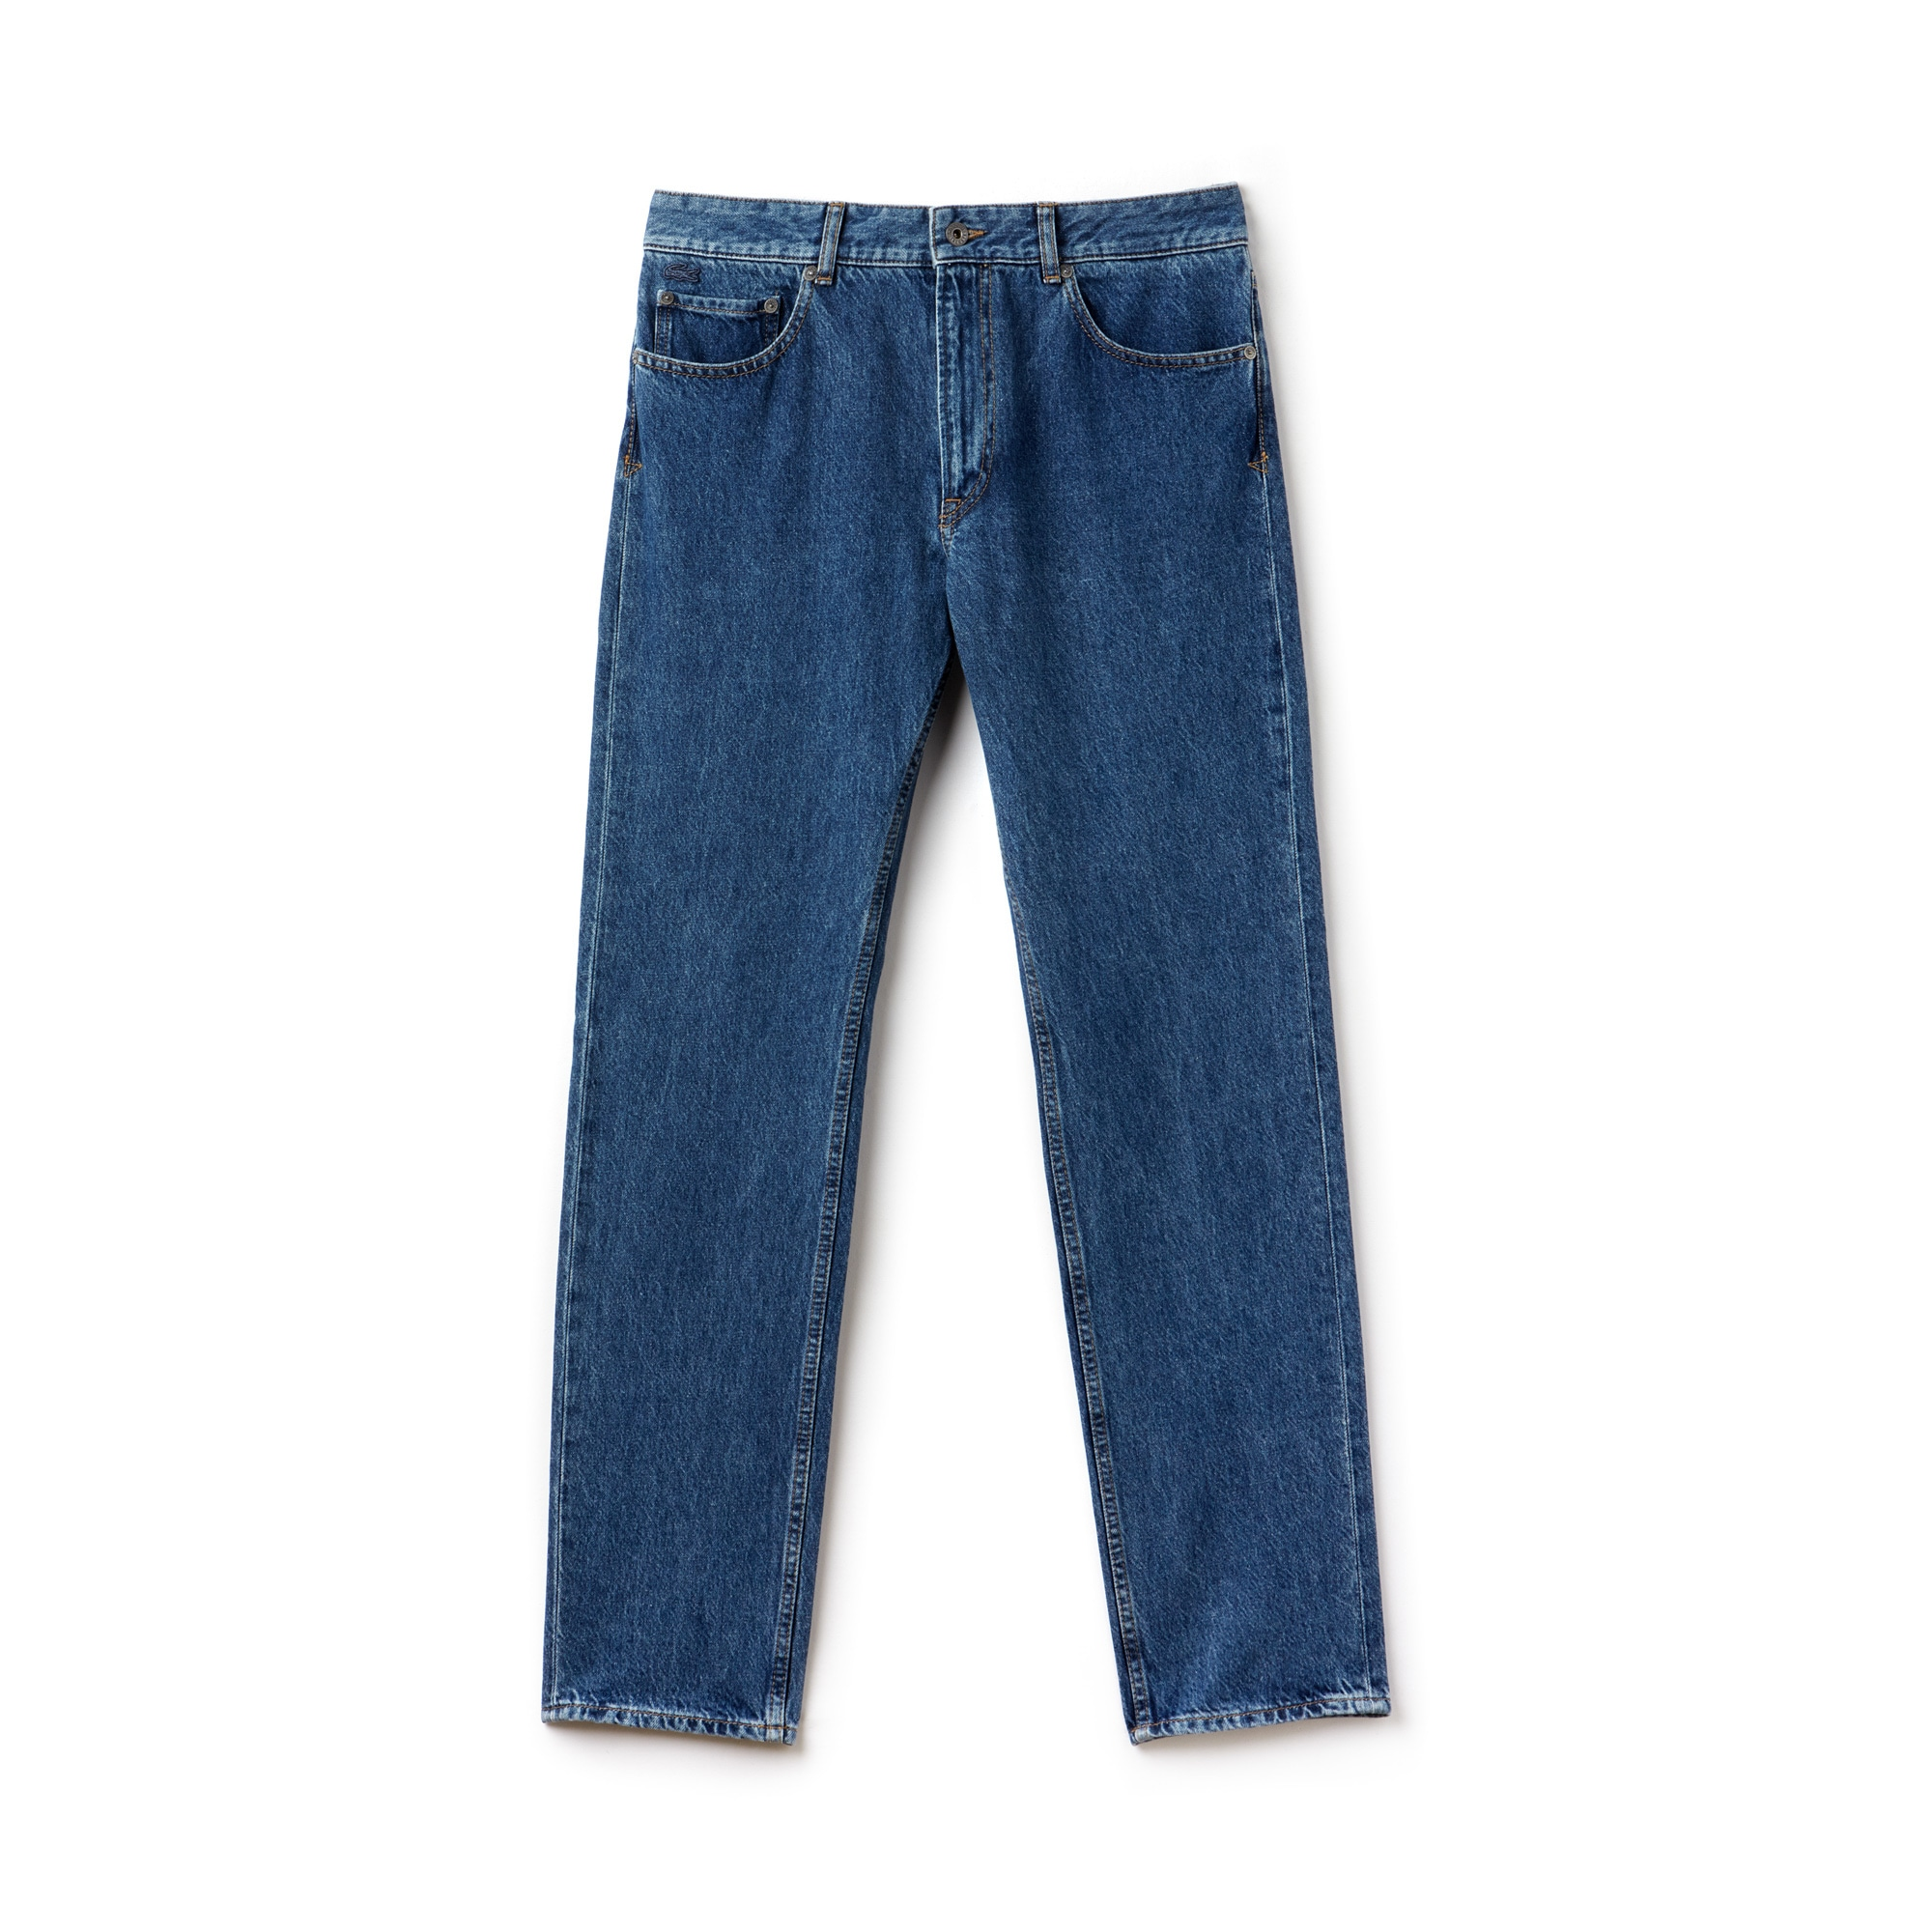 Men's Regular Fit 5 Pocket Cotton Denim Jeans